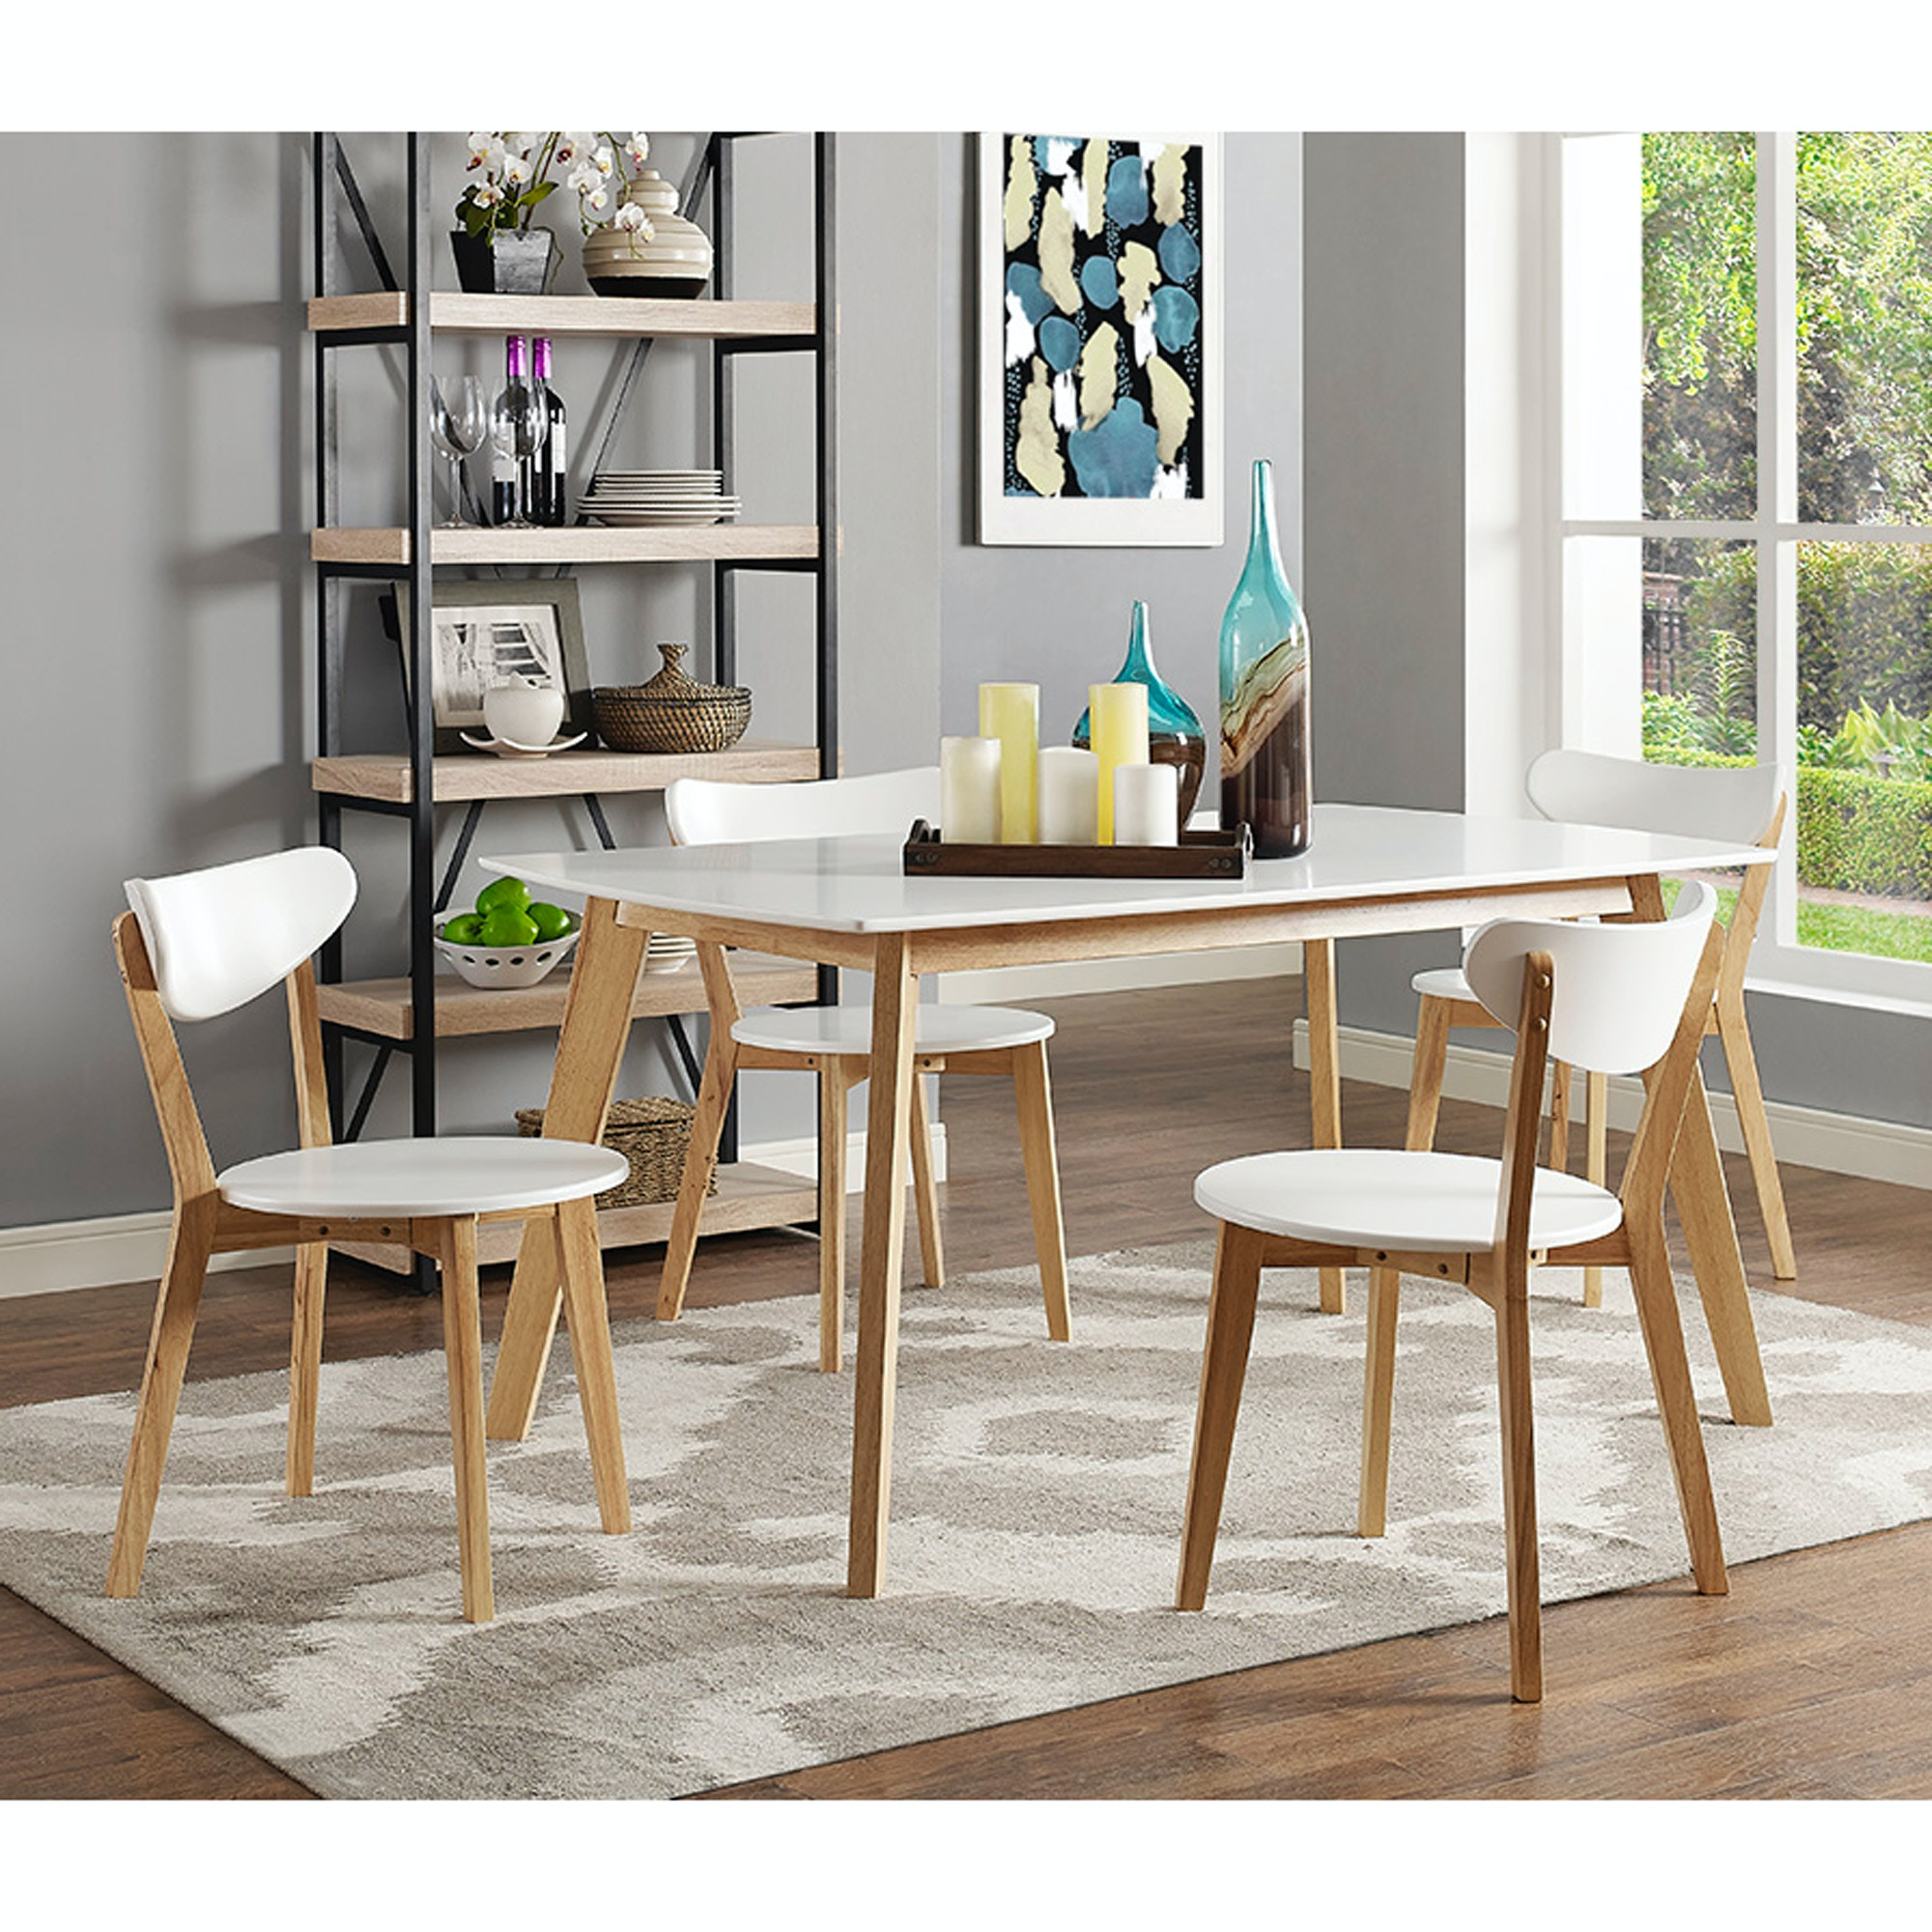 Merveilleux Ft Myers 5  Piece Retro Modern Wood Dining Set WEDC60RMWNL From Walter E.  Smithe